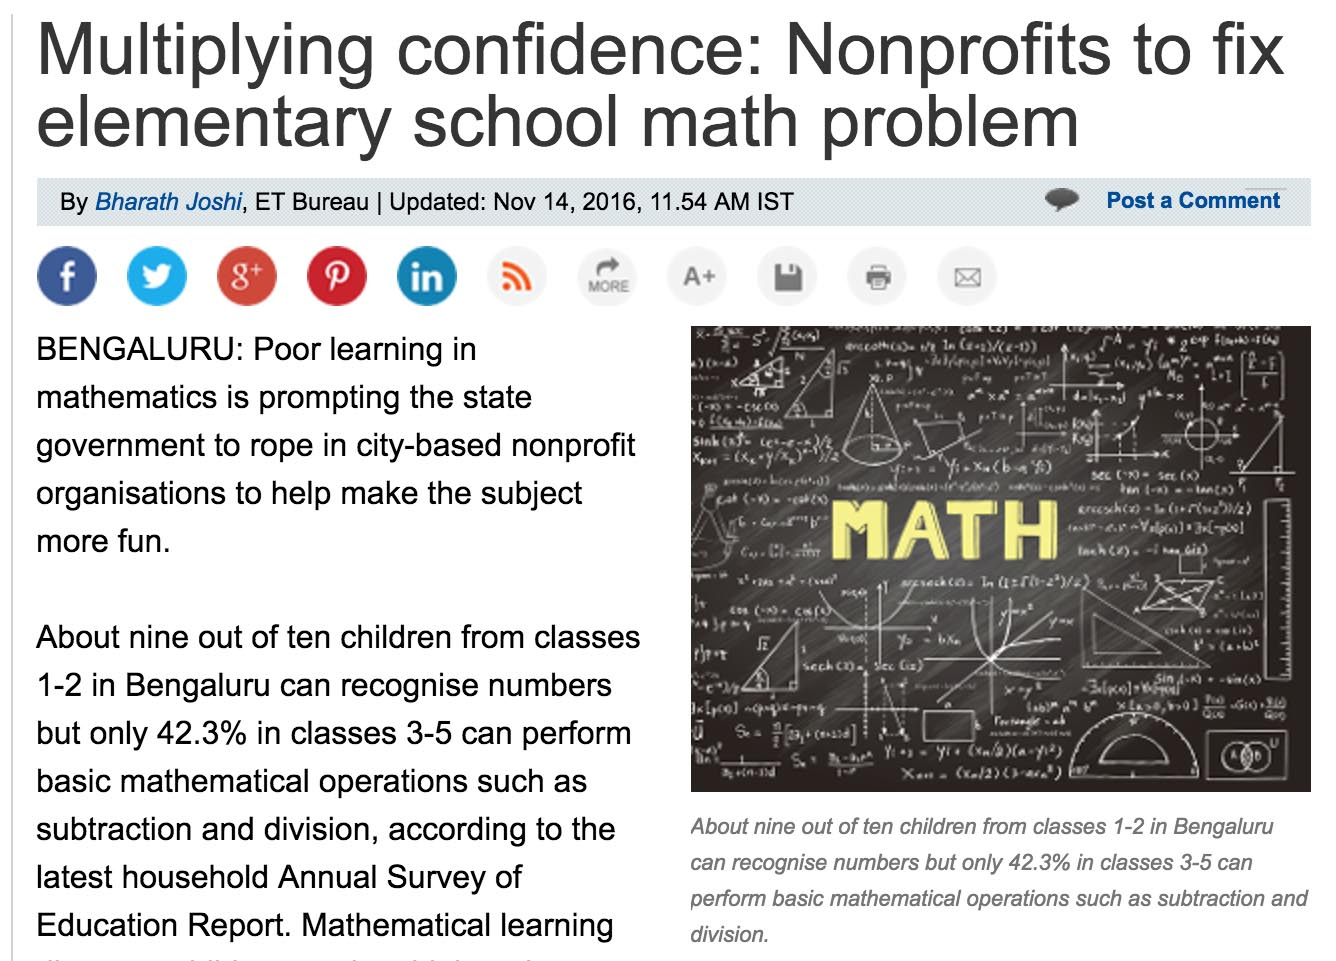 Multiplying confidence : Nonprofits to fix elementary school math problem